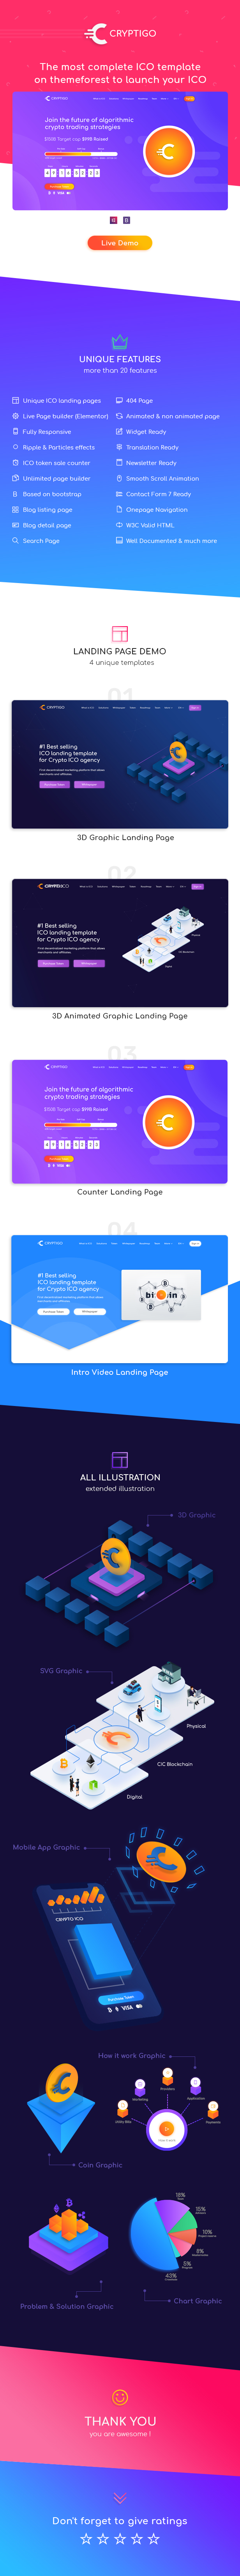 Cryptoigo - Cryptocurrency WordPress Theme With Elementor Page Builder - 2